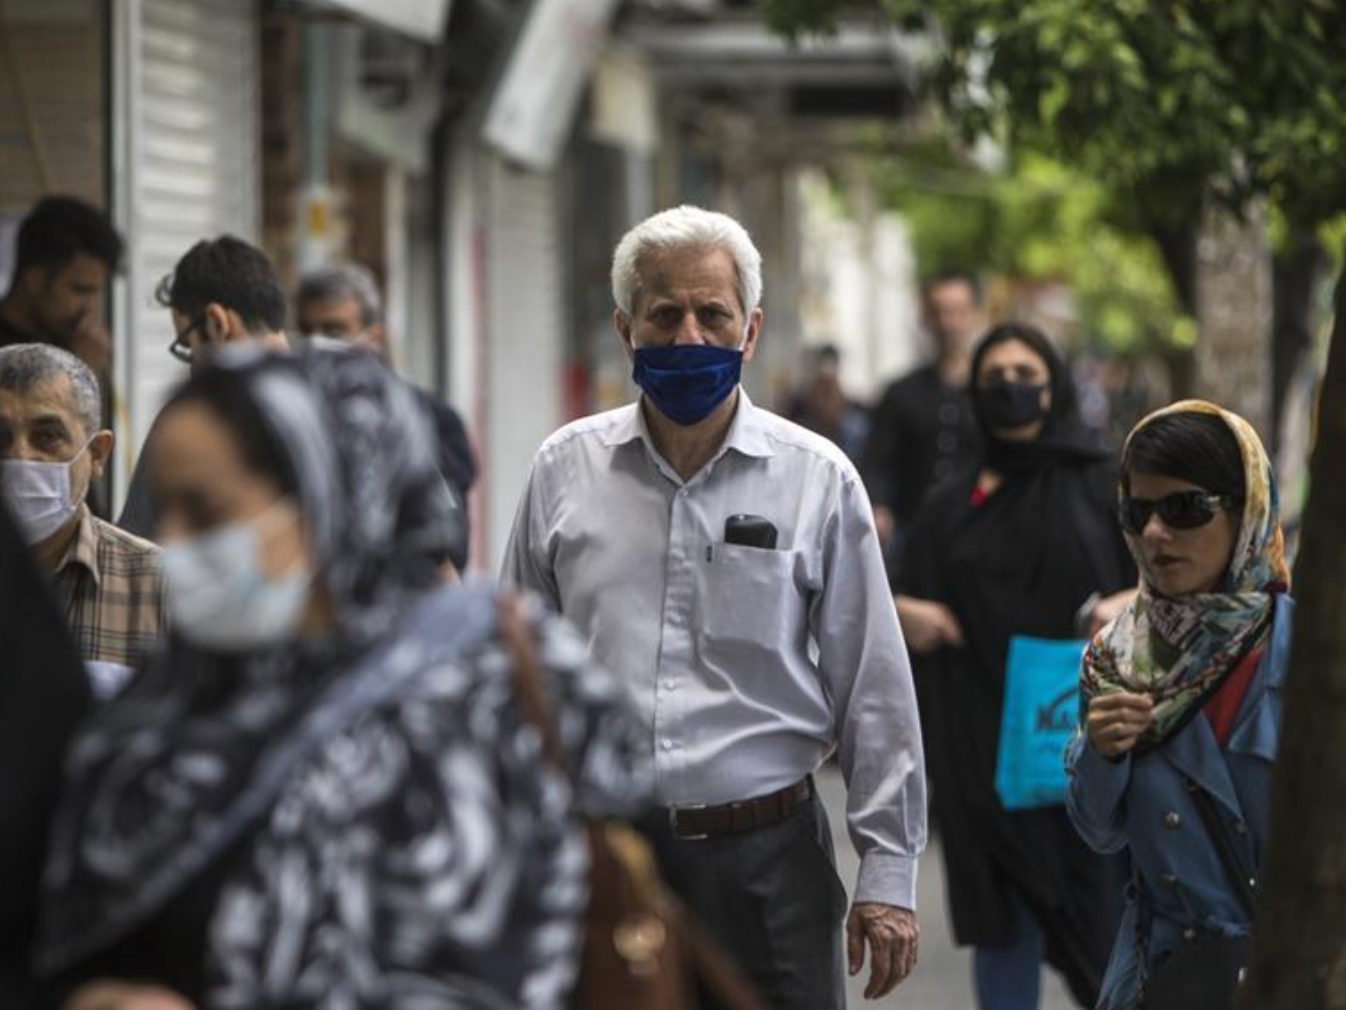 Iran's COVID-19 cases rise to 175,927 with 2,095 new infections